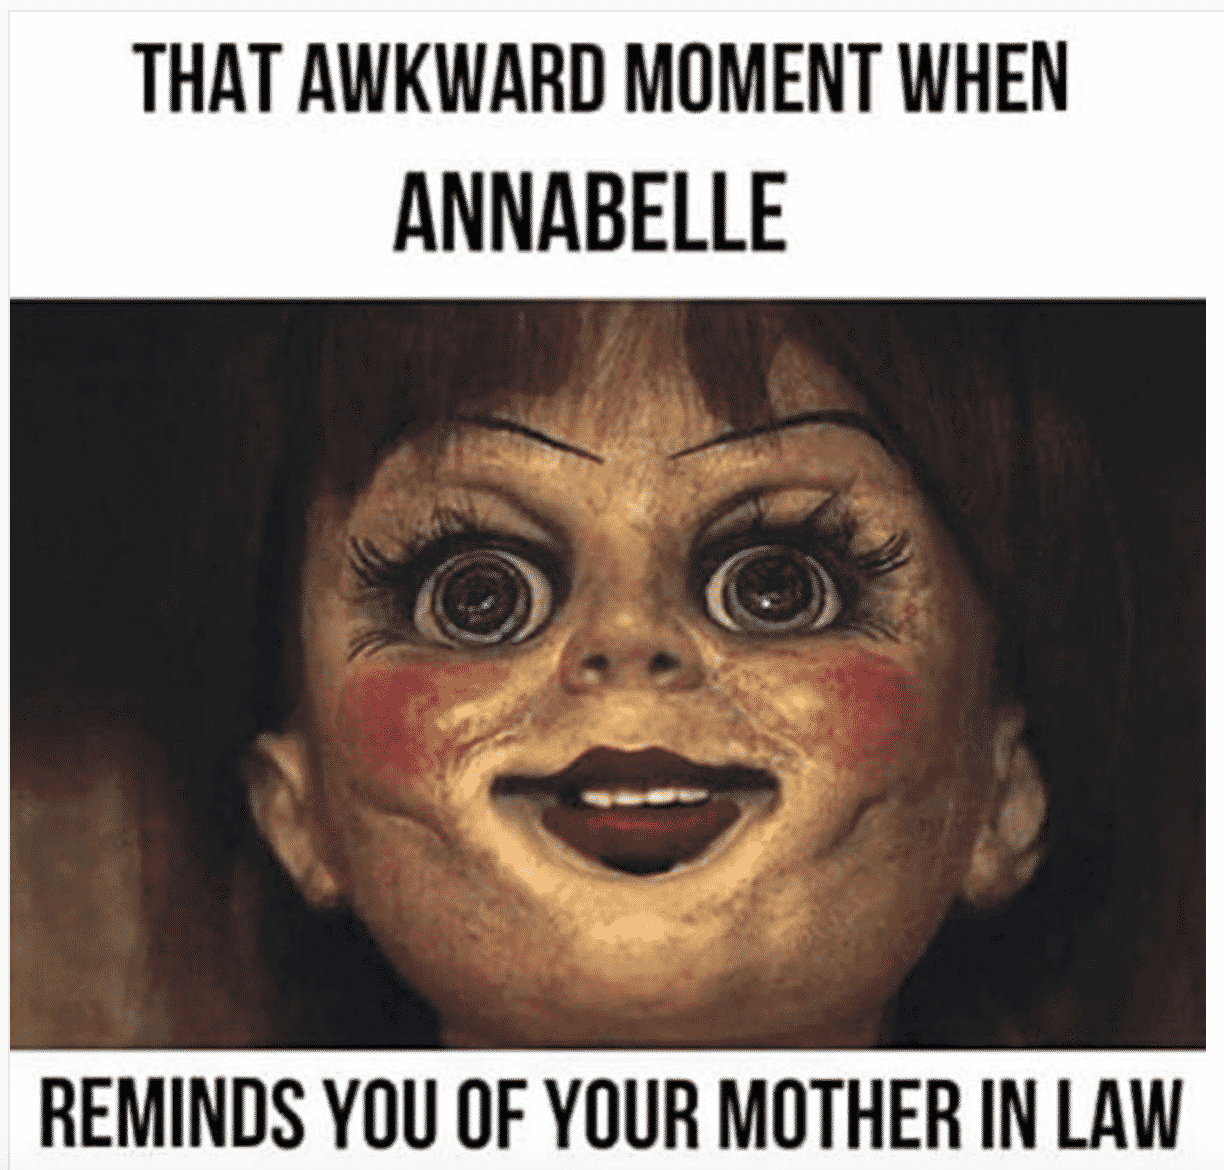 20 Awfully Funny Mother In Law Memes Sayingimages Com Mother In Law Memes Funny Memes About Life Awkward Moments